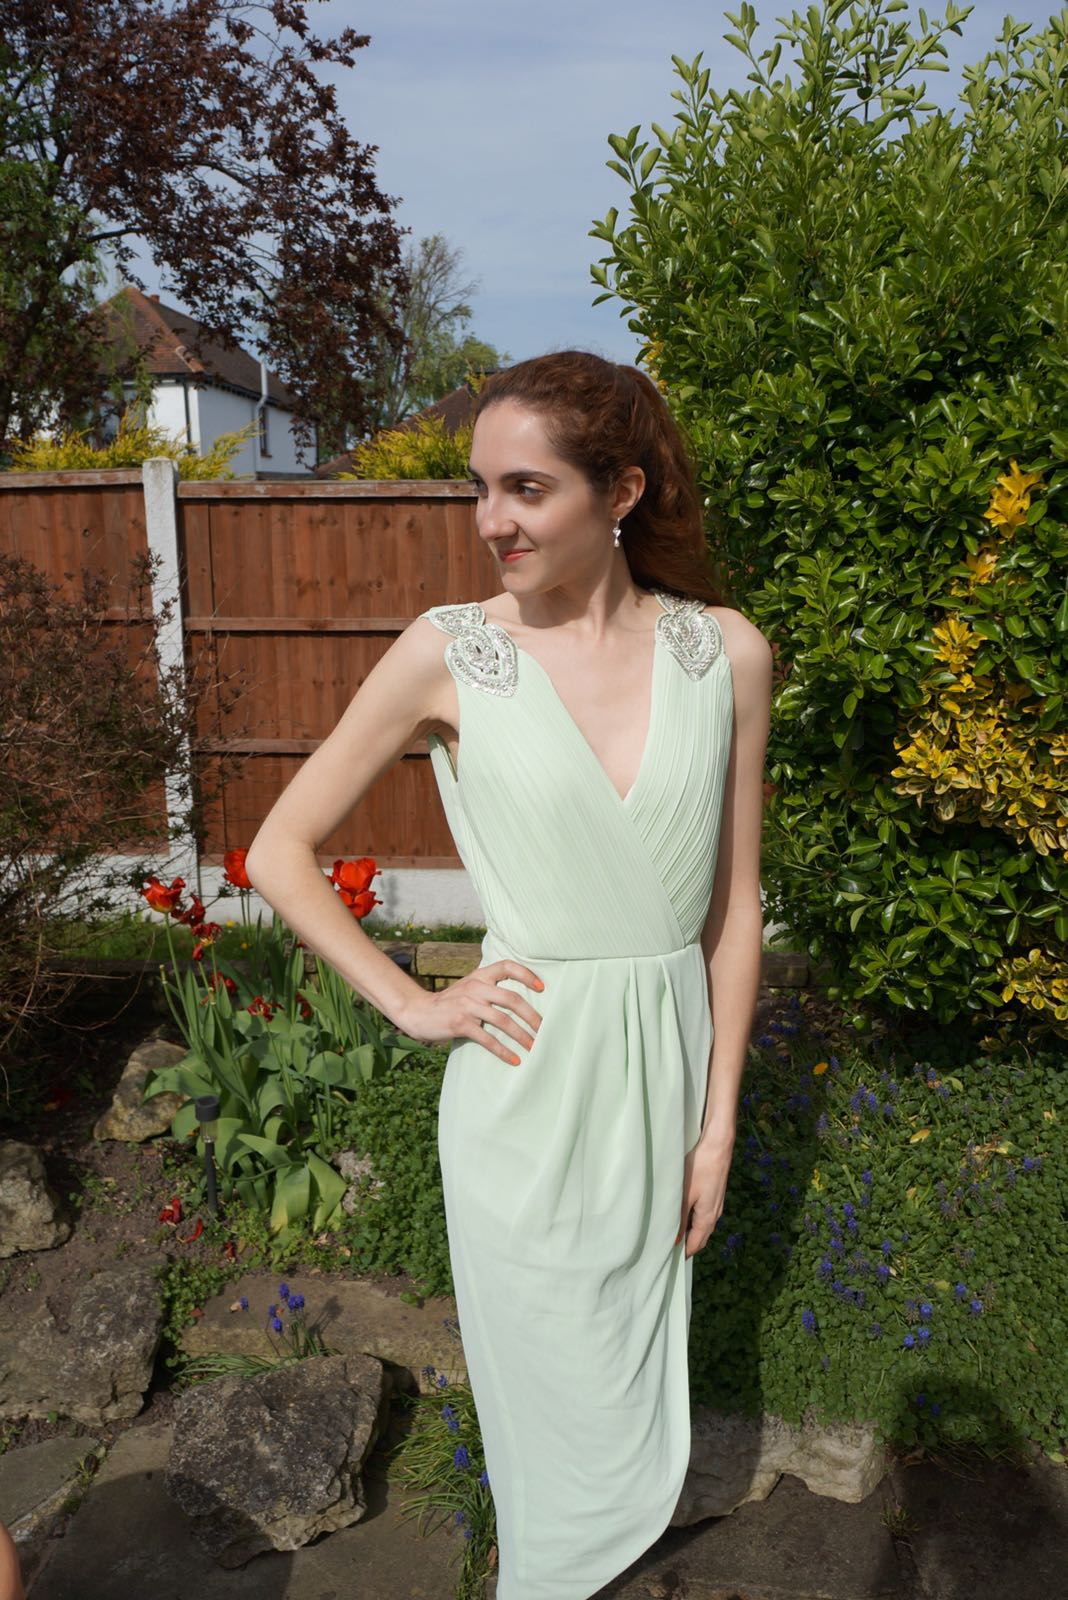 outside wearing mint dress